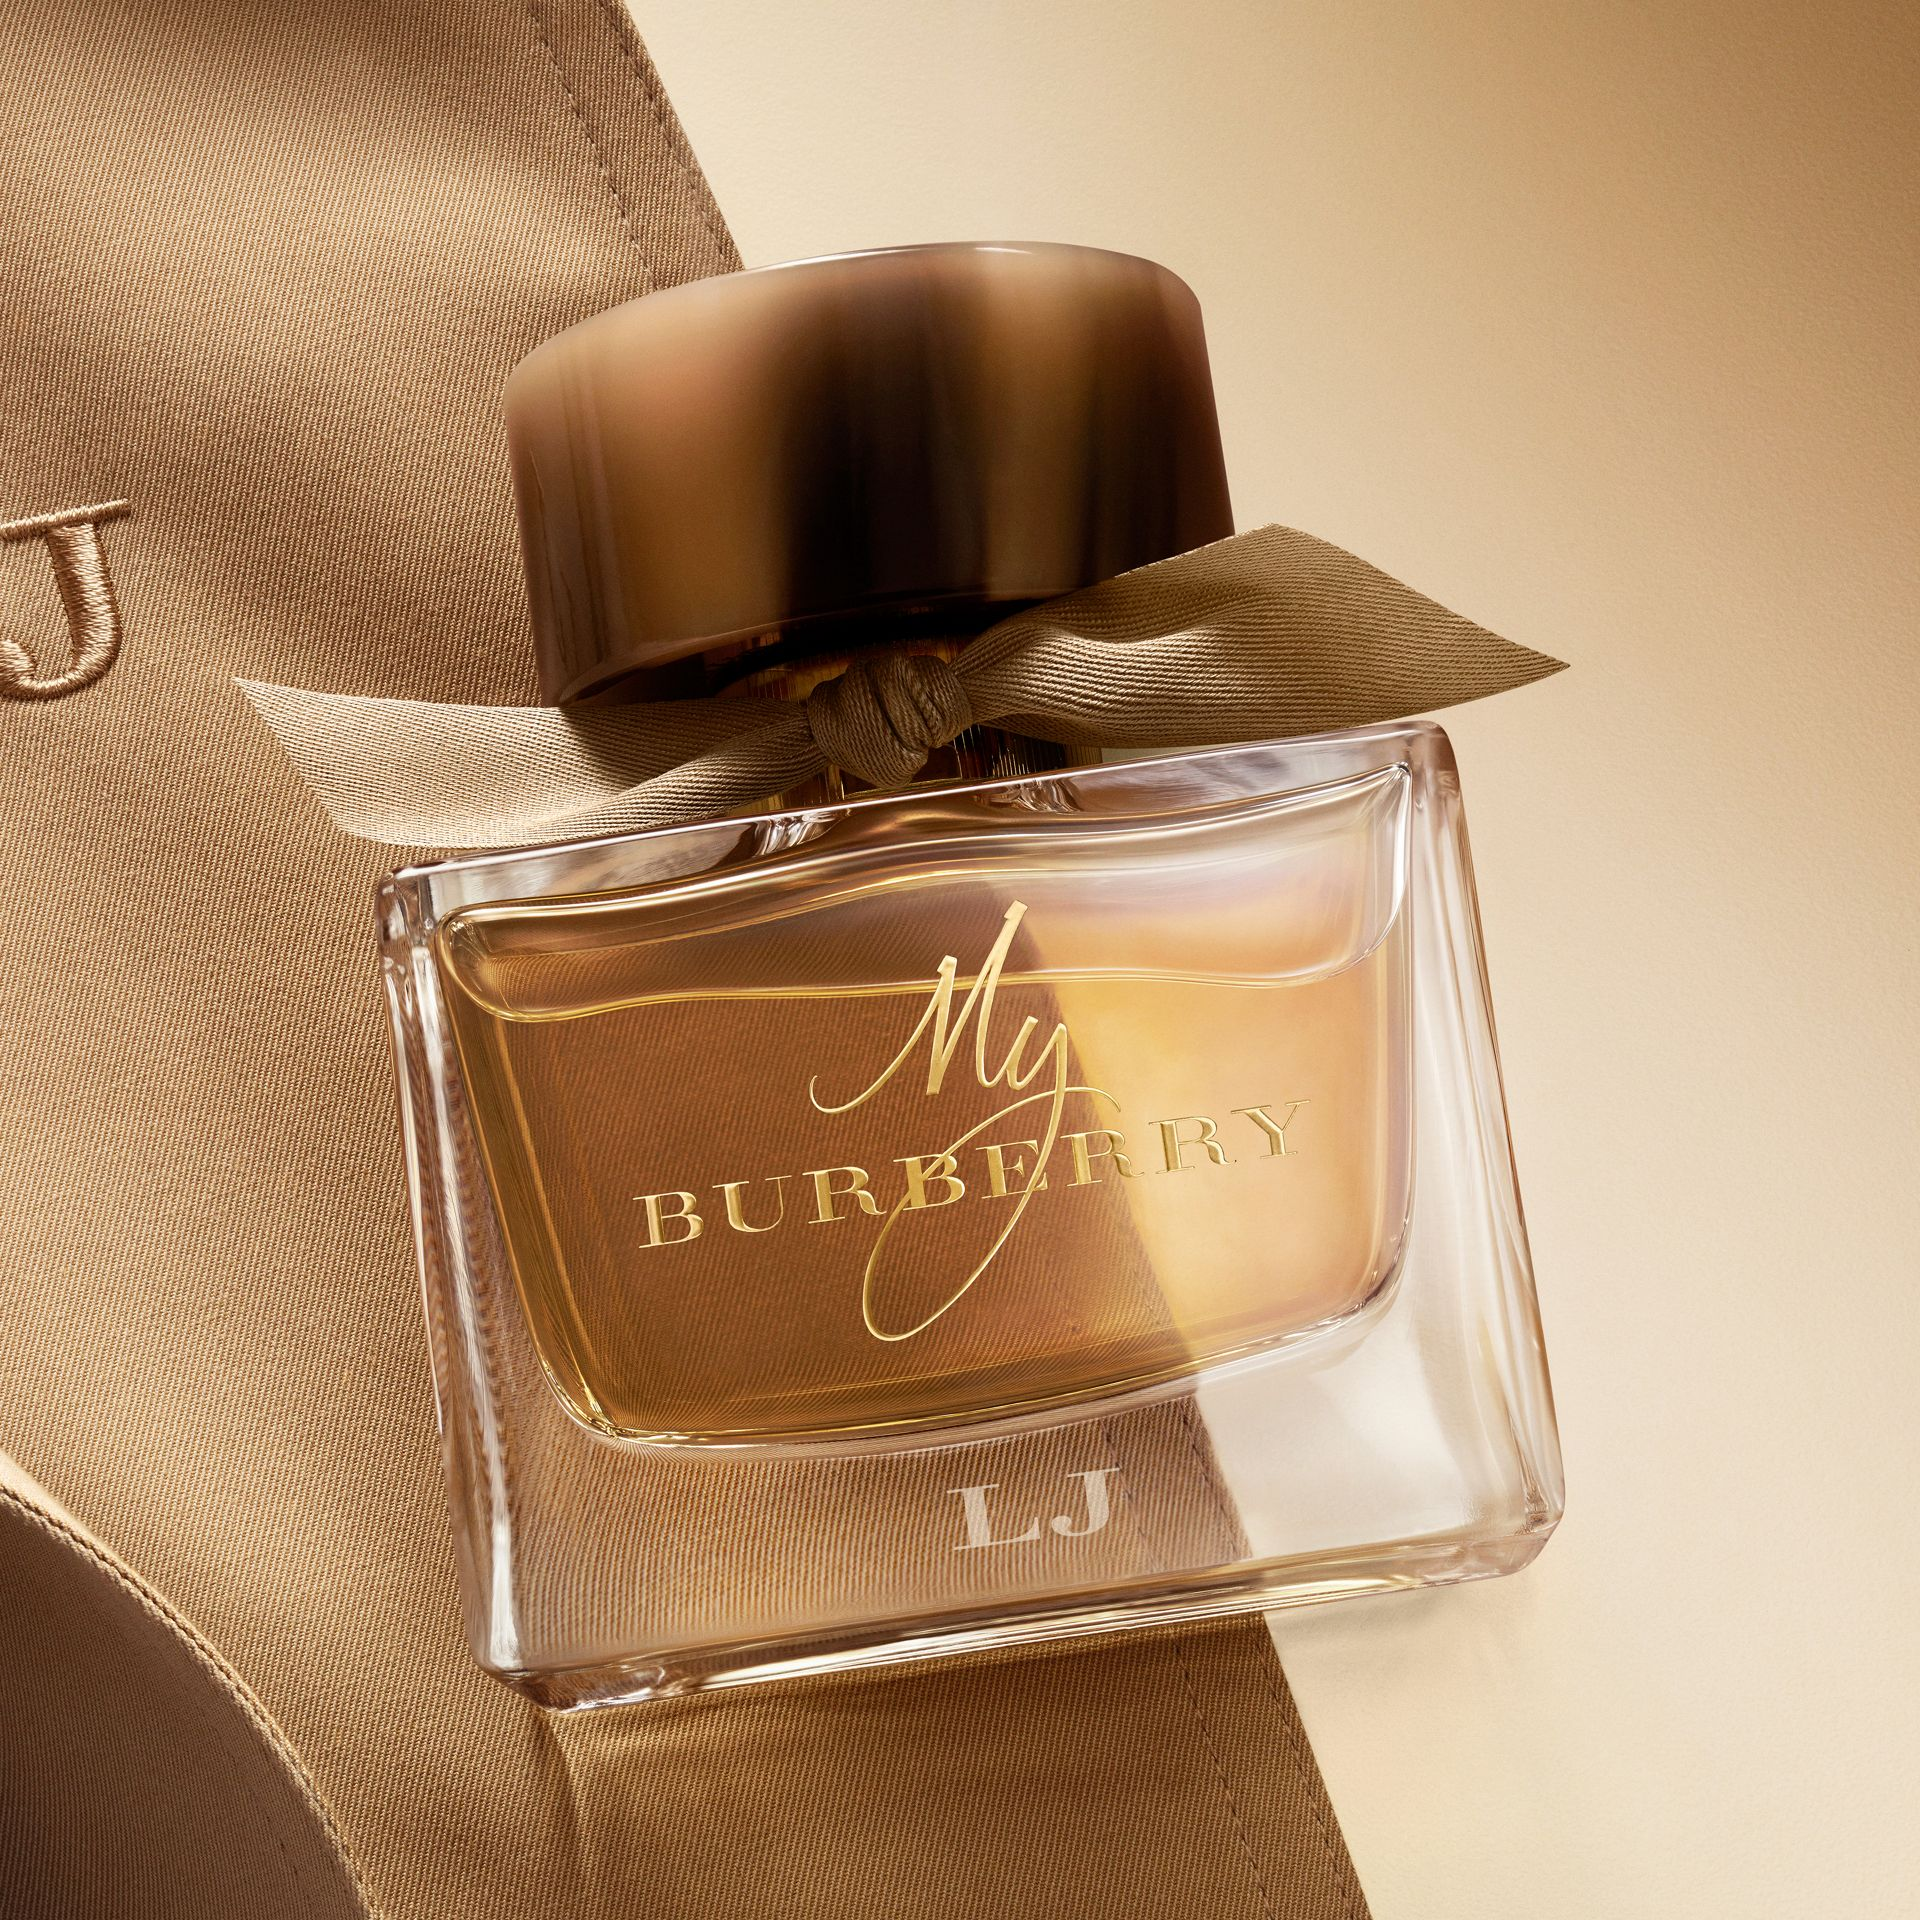 My Burberry Eau de Parfum 900 ml in der Sammleredition (Honiggelb/trenchfarben) - Damen | Burberry - Galerie-Bild 5